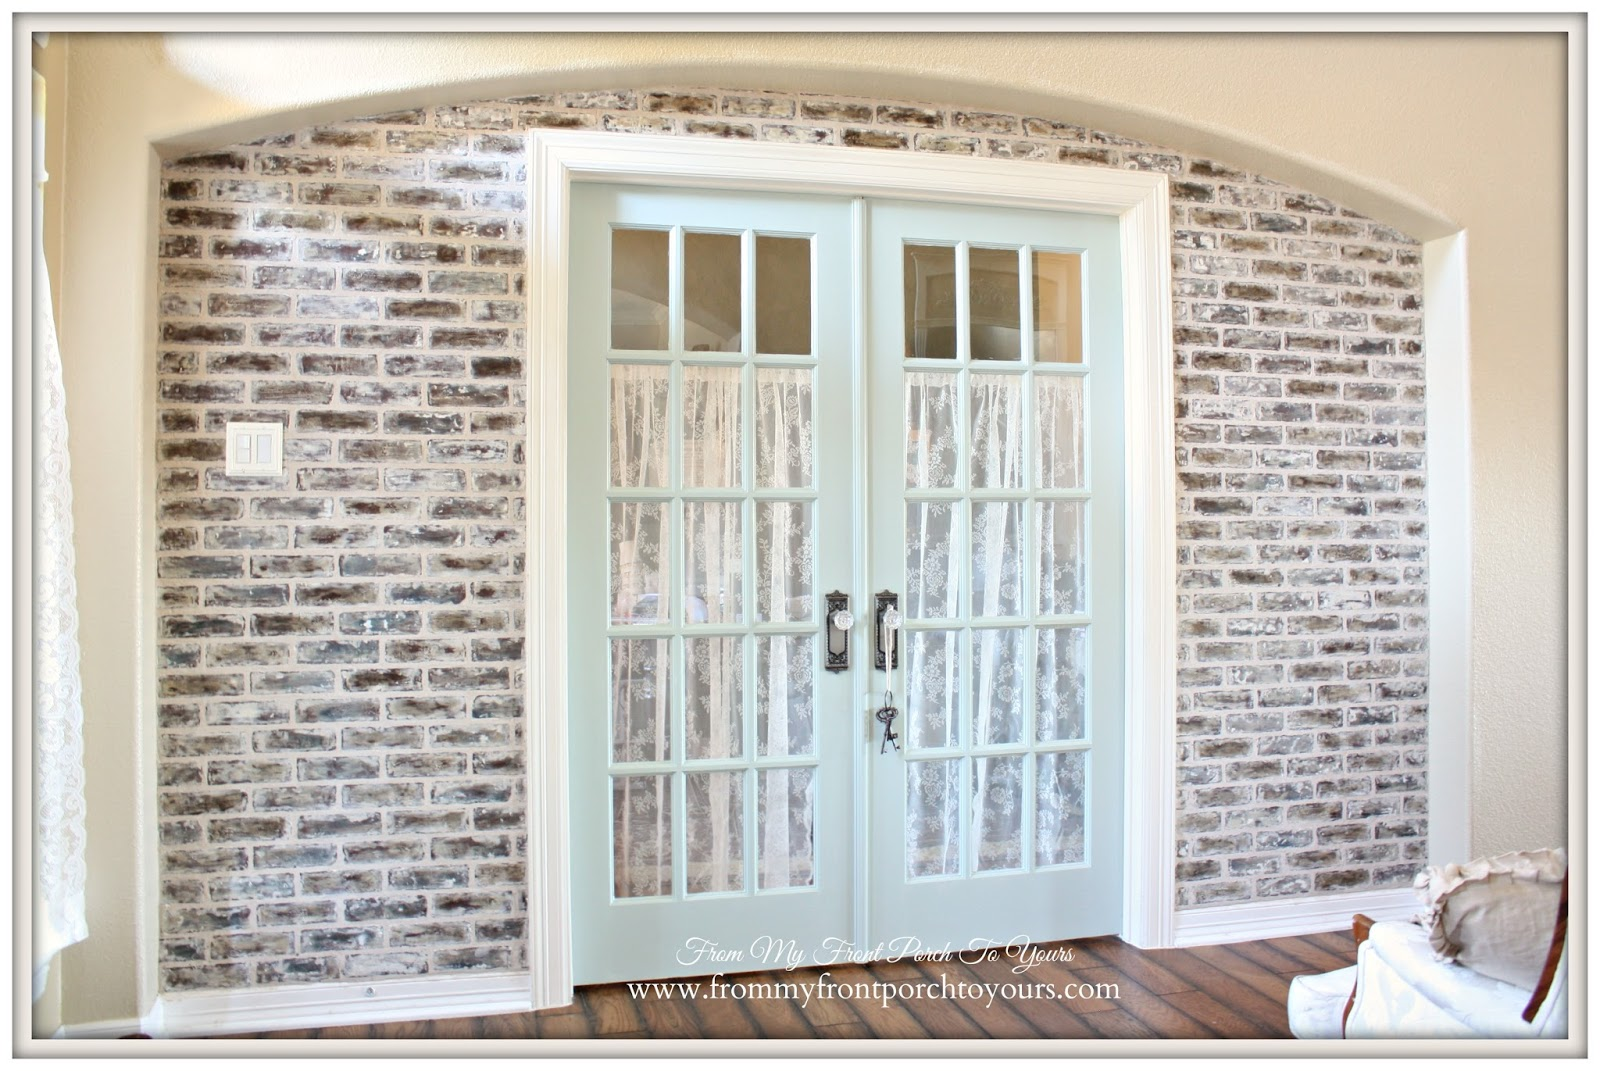 AfterFrench Farmhouse-DIY Faux Brick Wall- From My Front Porch To Yours